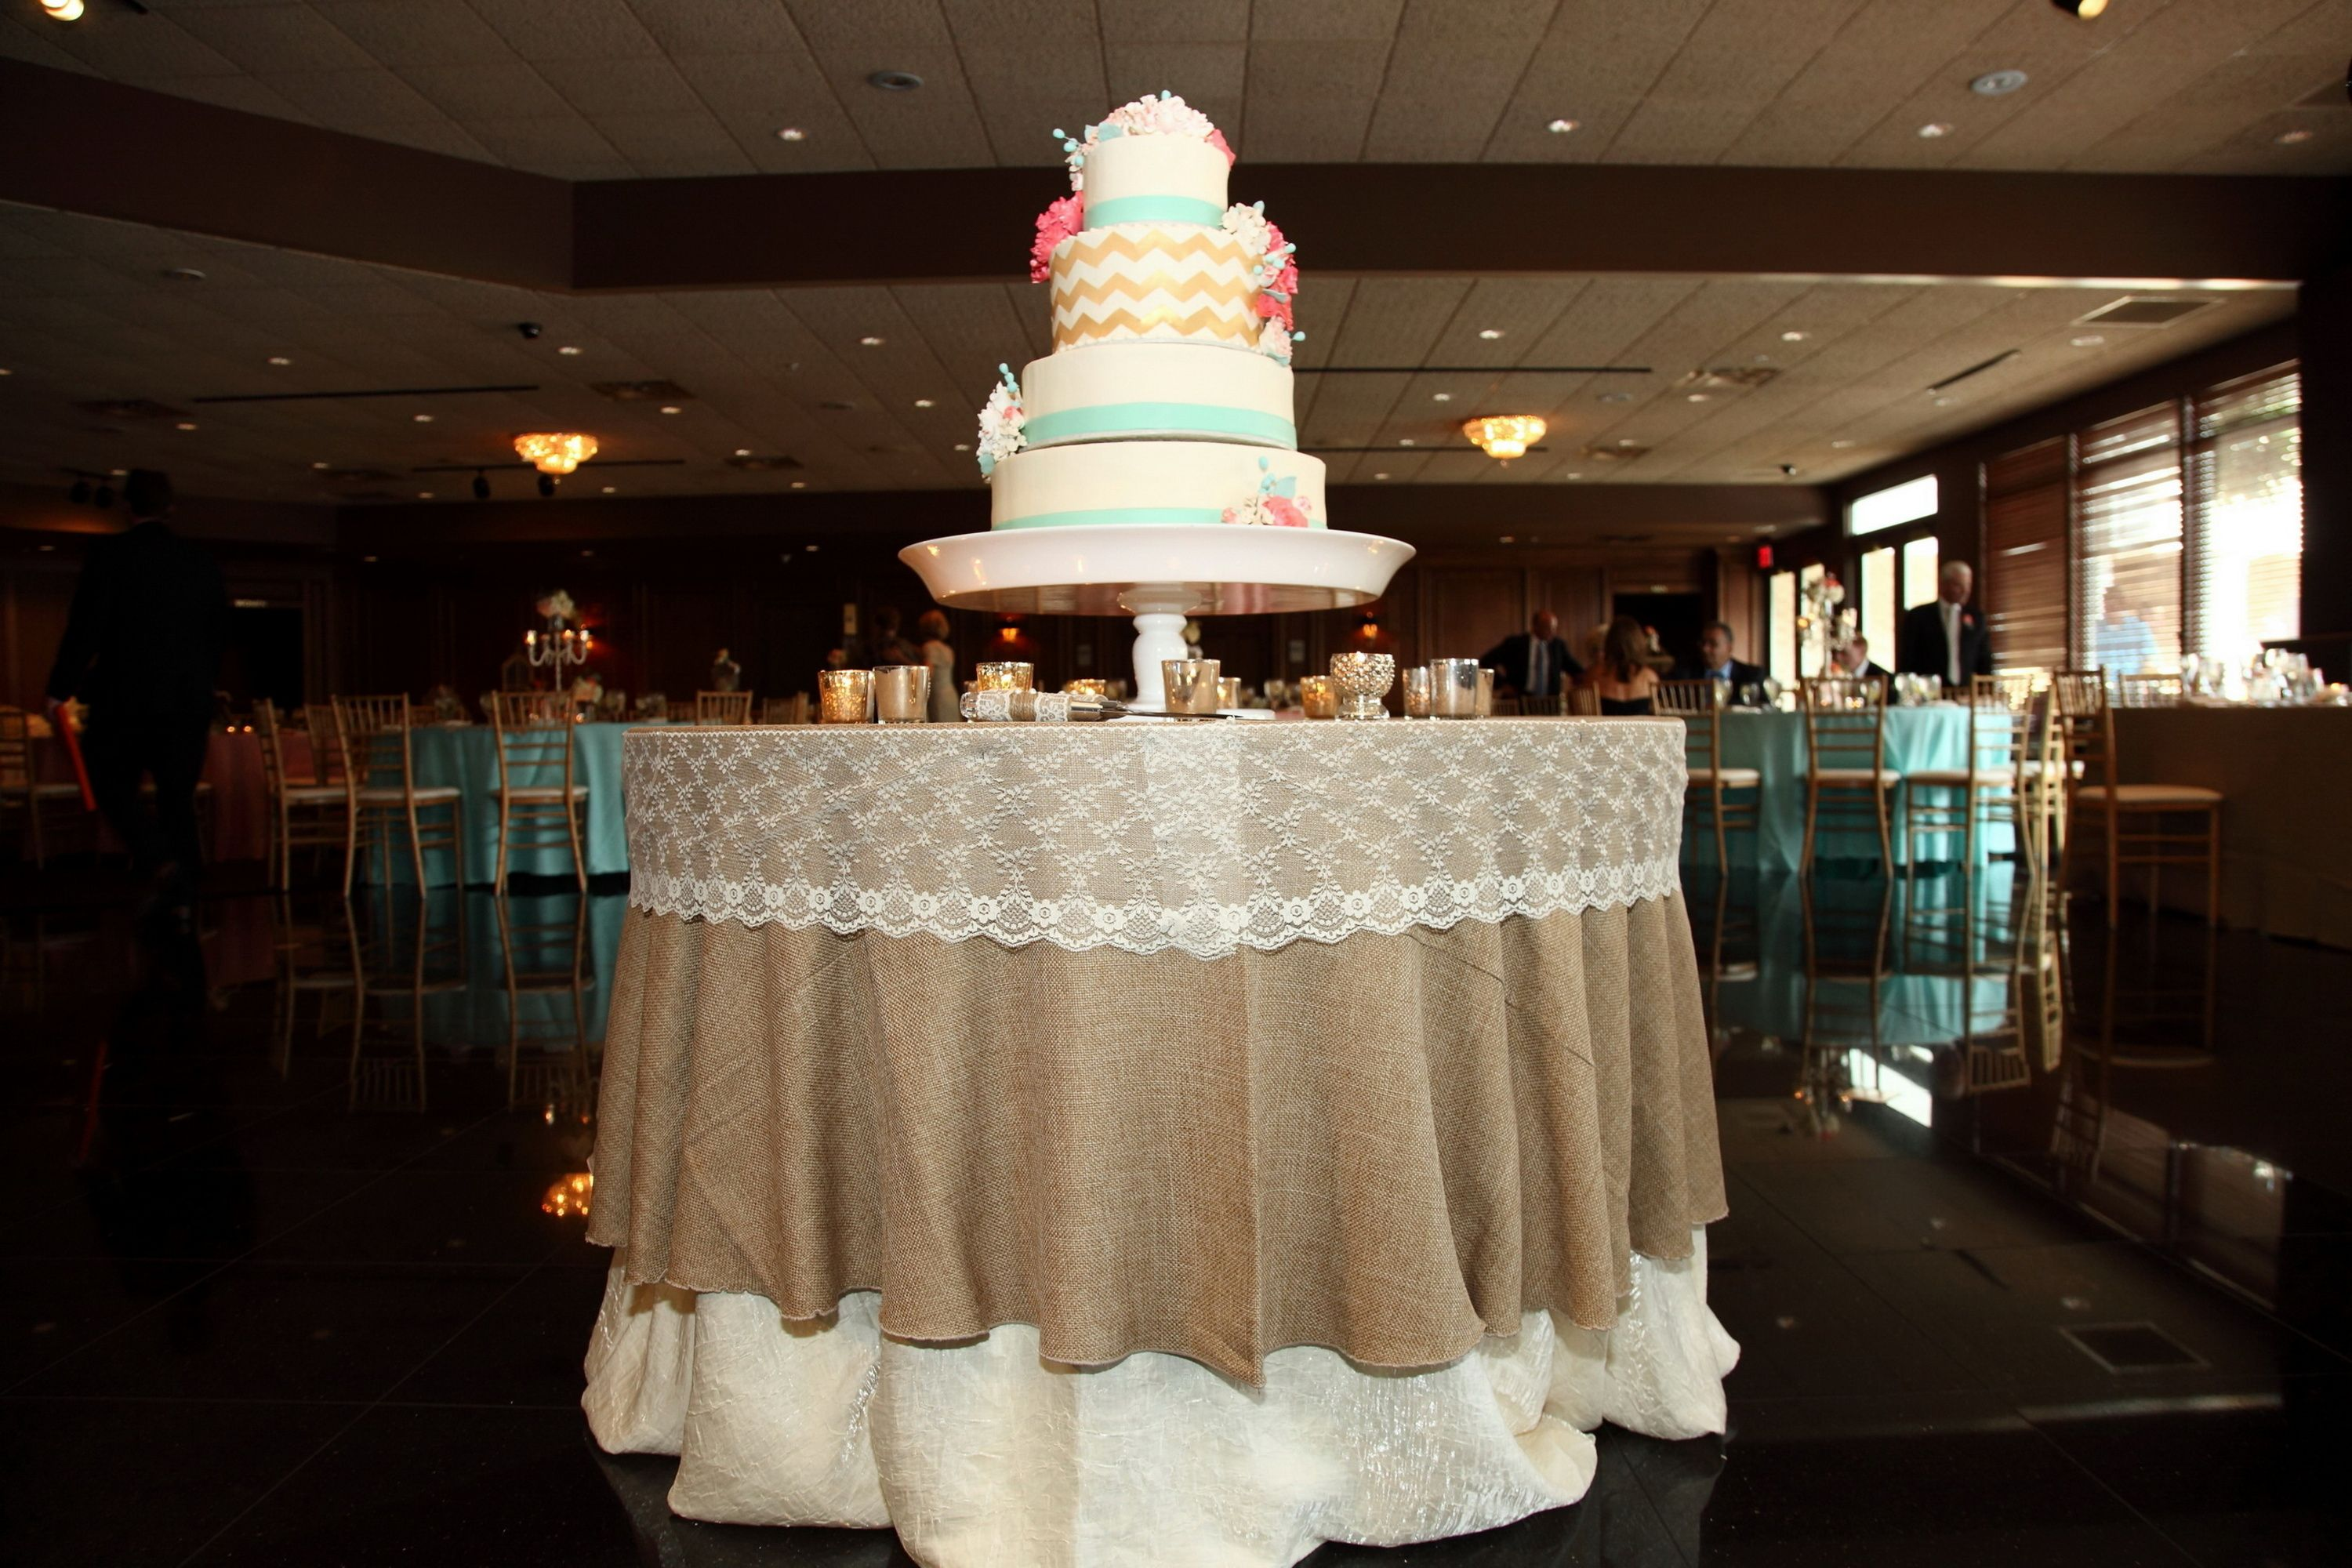 Wedding cake table with burlap and lace wedding ideas pinterest wedding cake table with burlap and lace junglespirit Gallery